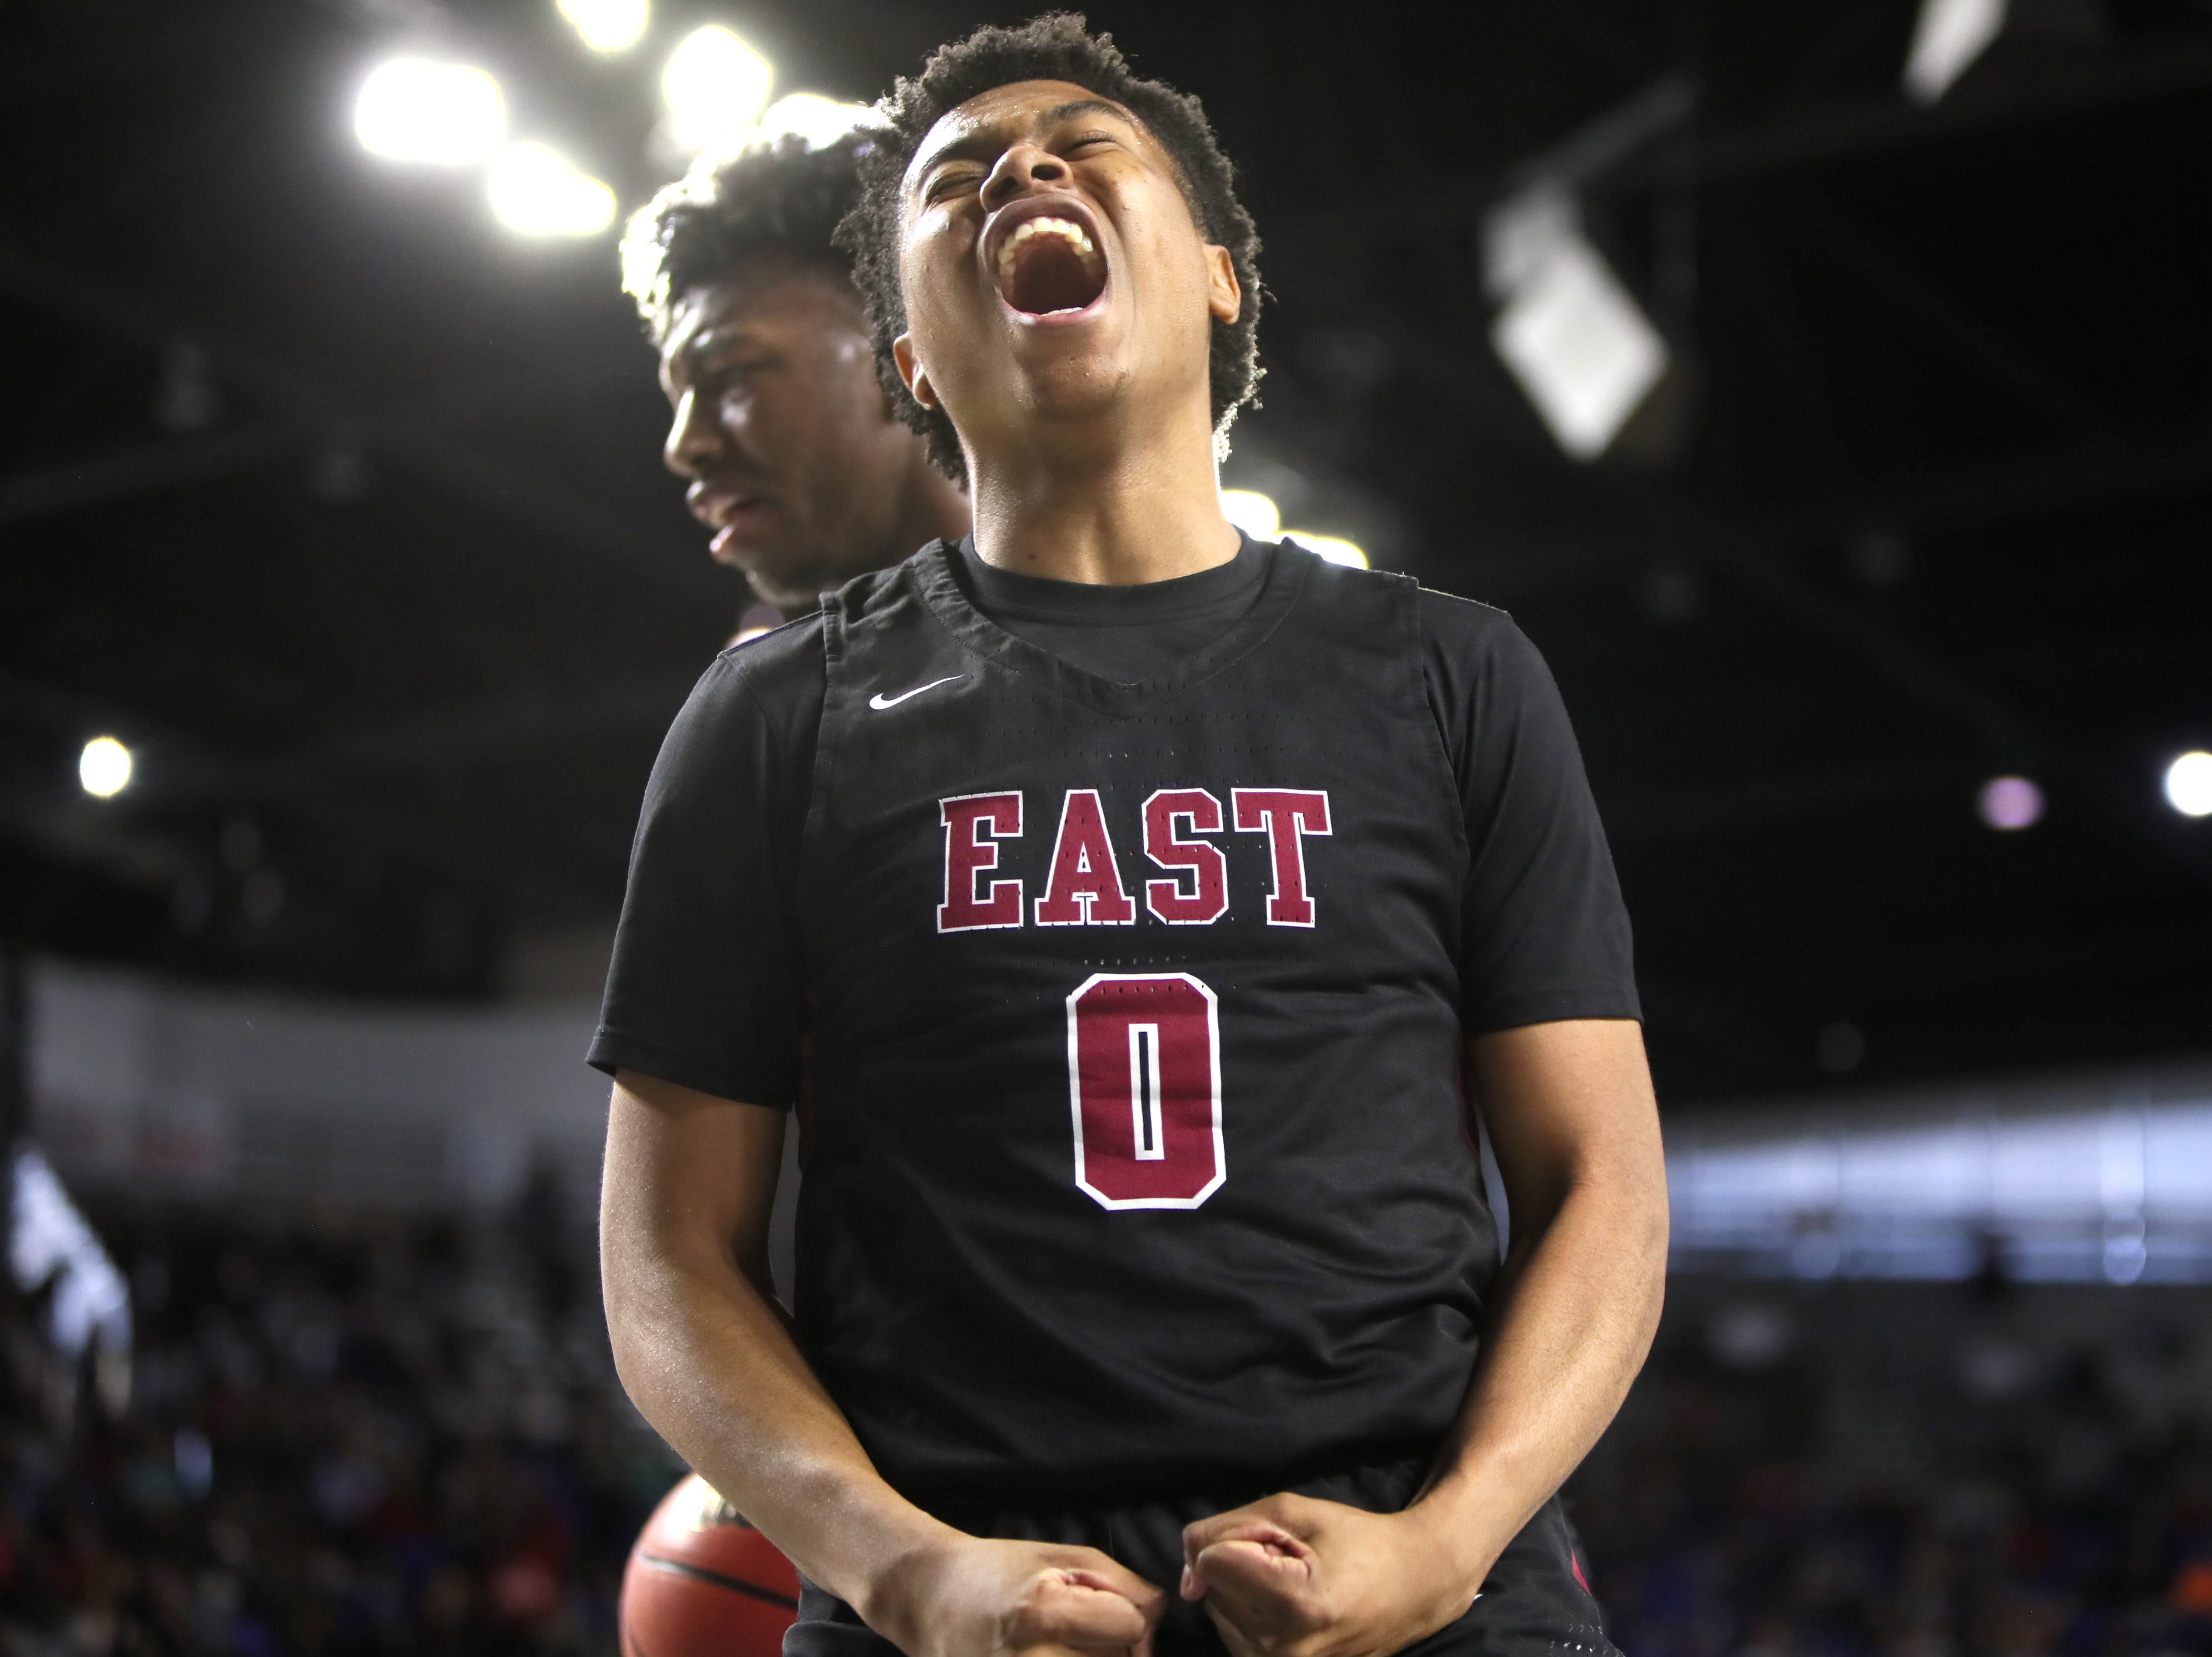 Memphis East's Derrein Merriweather celebrates his teammate's layup as they go on to defeat Brentwood 46-42 during the Class AAA boys basketball state semifinal at the Murphy Center in Murfreesboro, Tenn. on Friday, March 15, 2019.